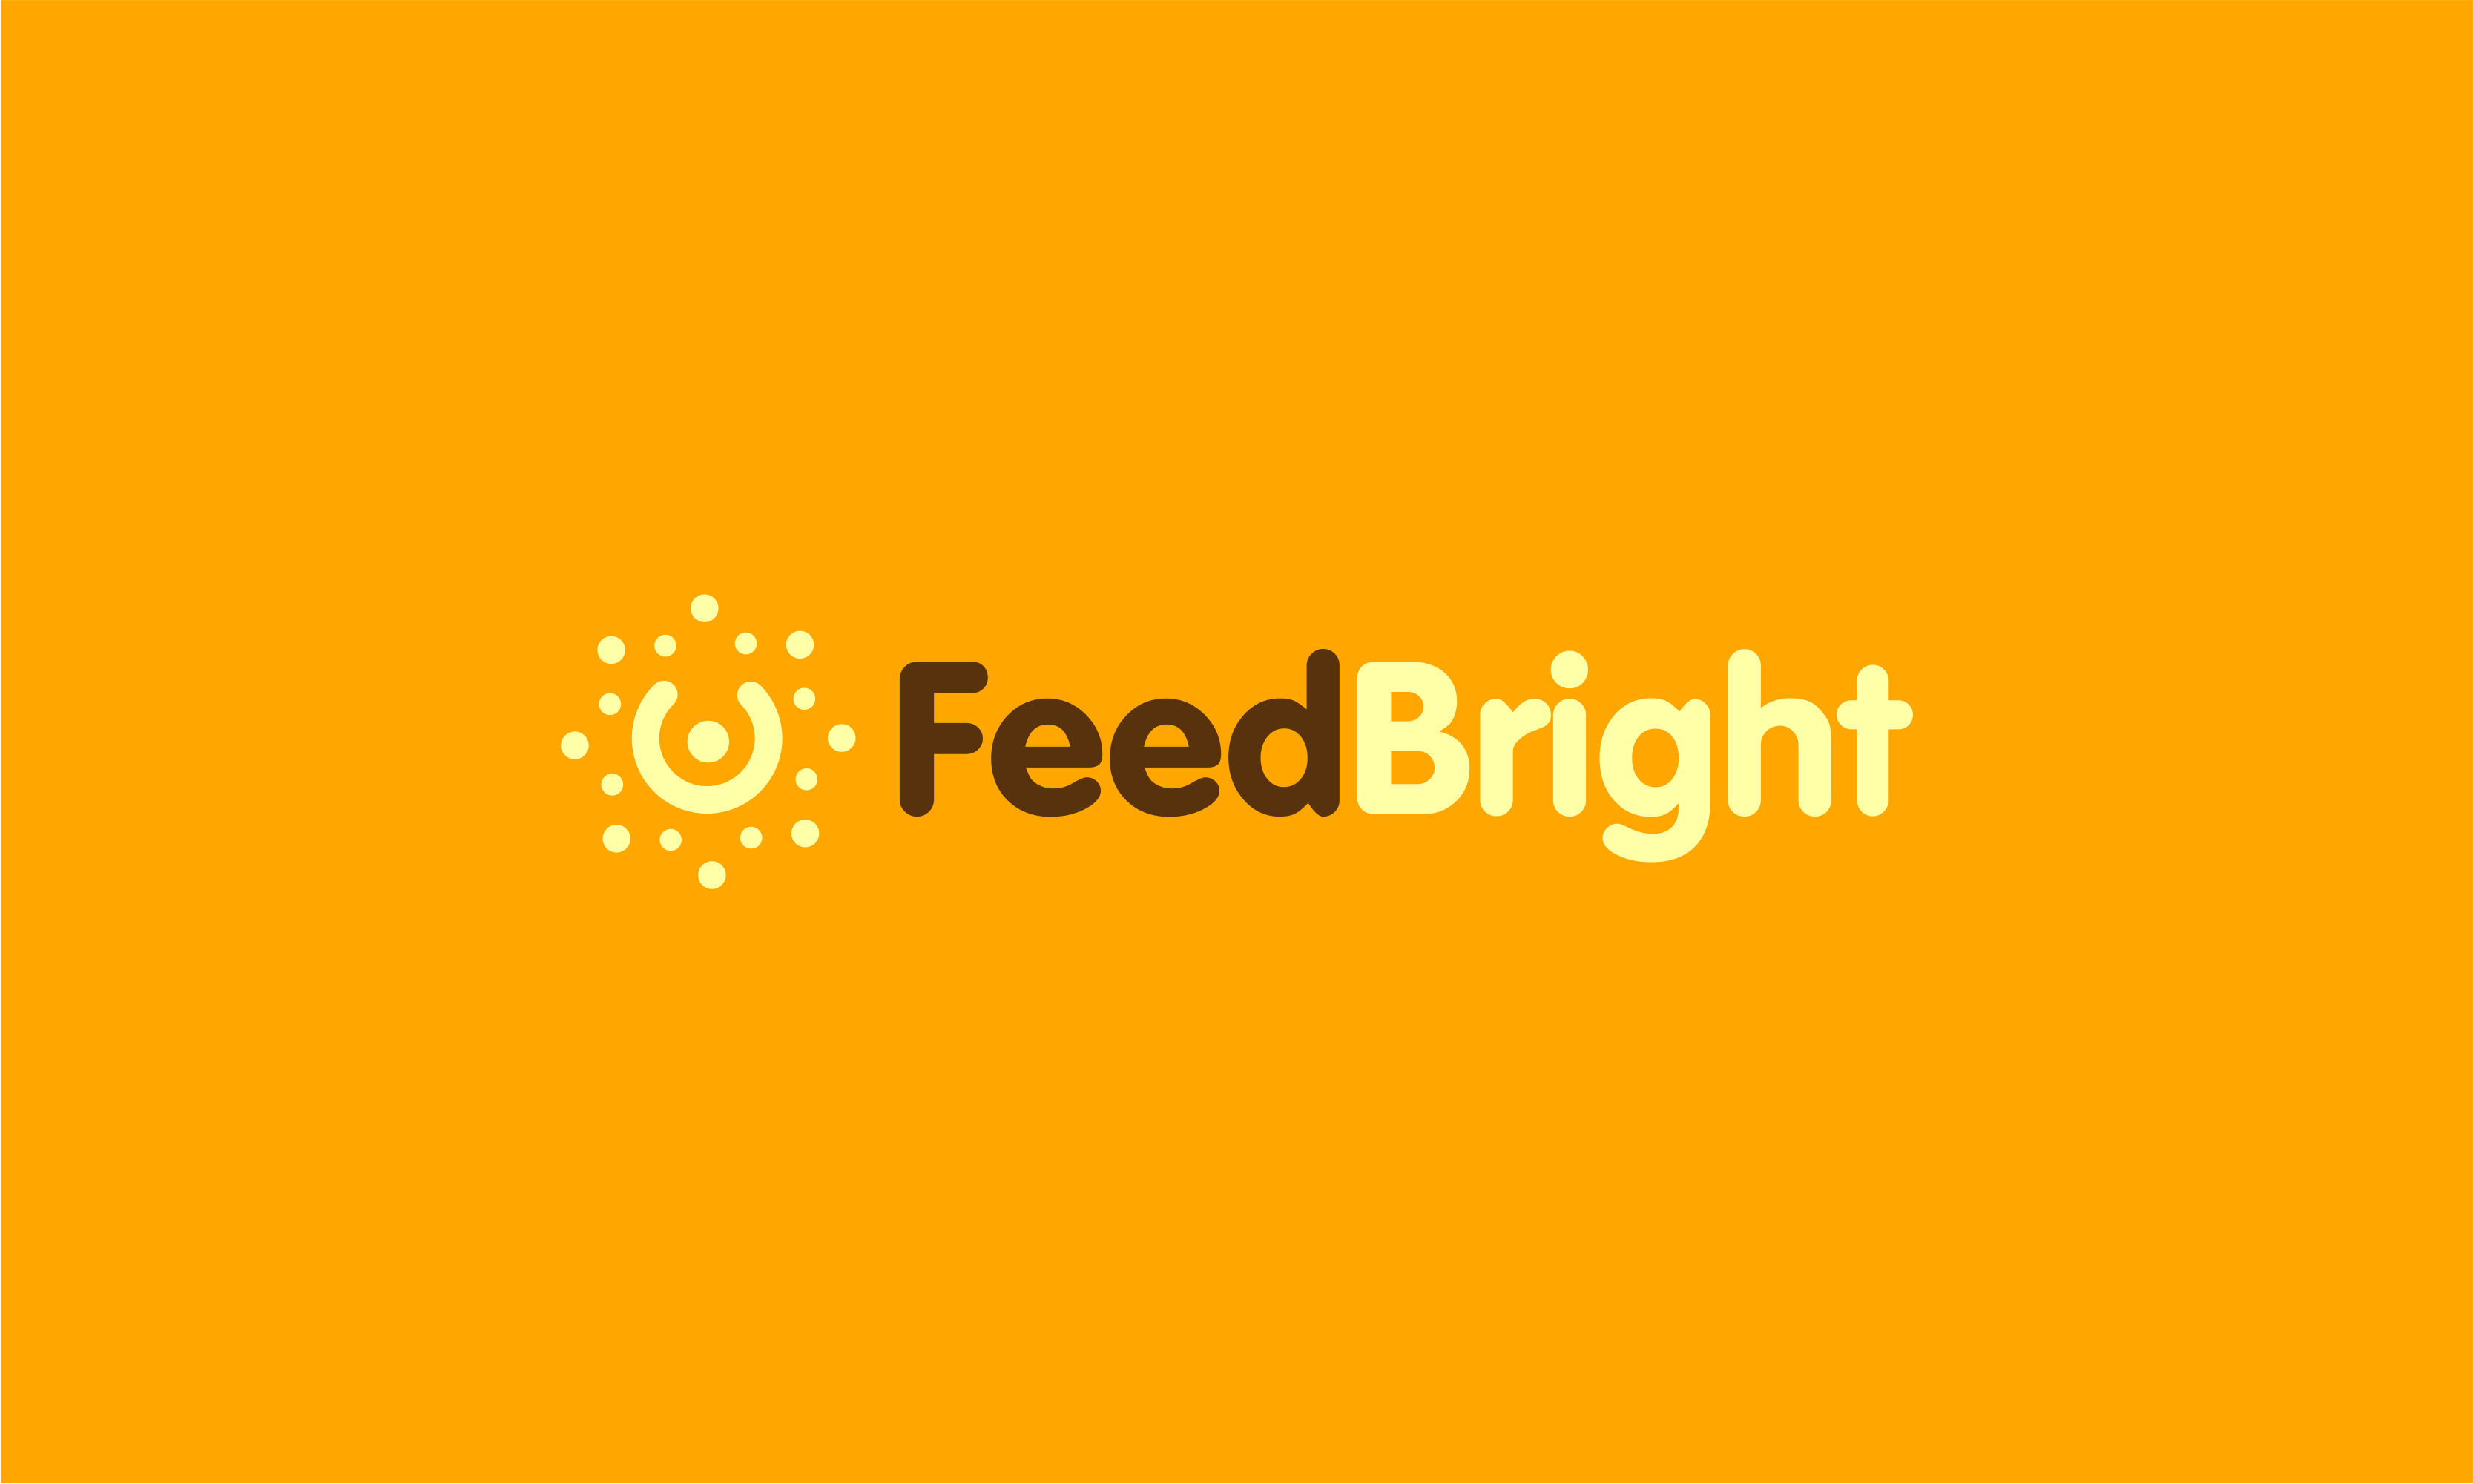 Feedbright